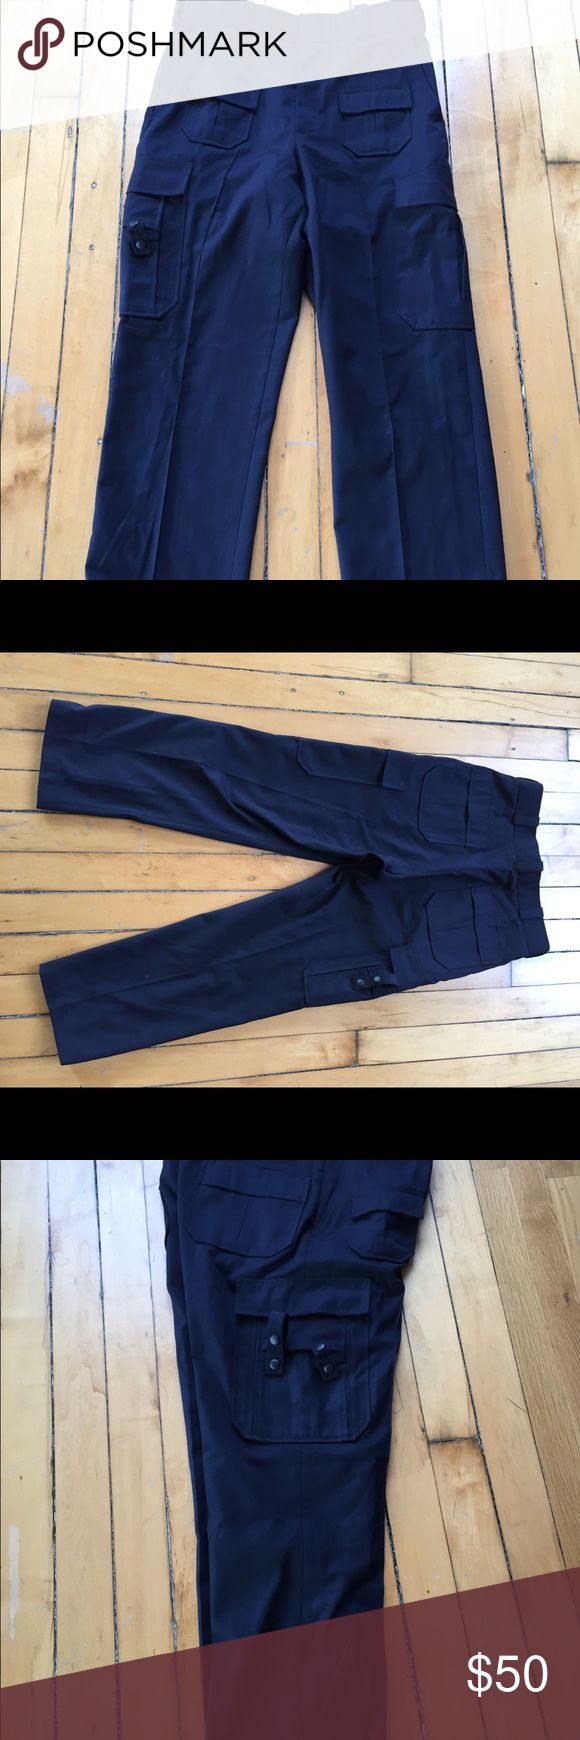 Flying Cross uniform pants Flying cross uniform emergency service pants dark navy, brand new without tags 34 Reg x ~30inseam flying cross Pants Cargo